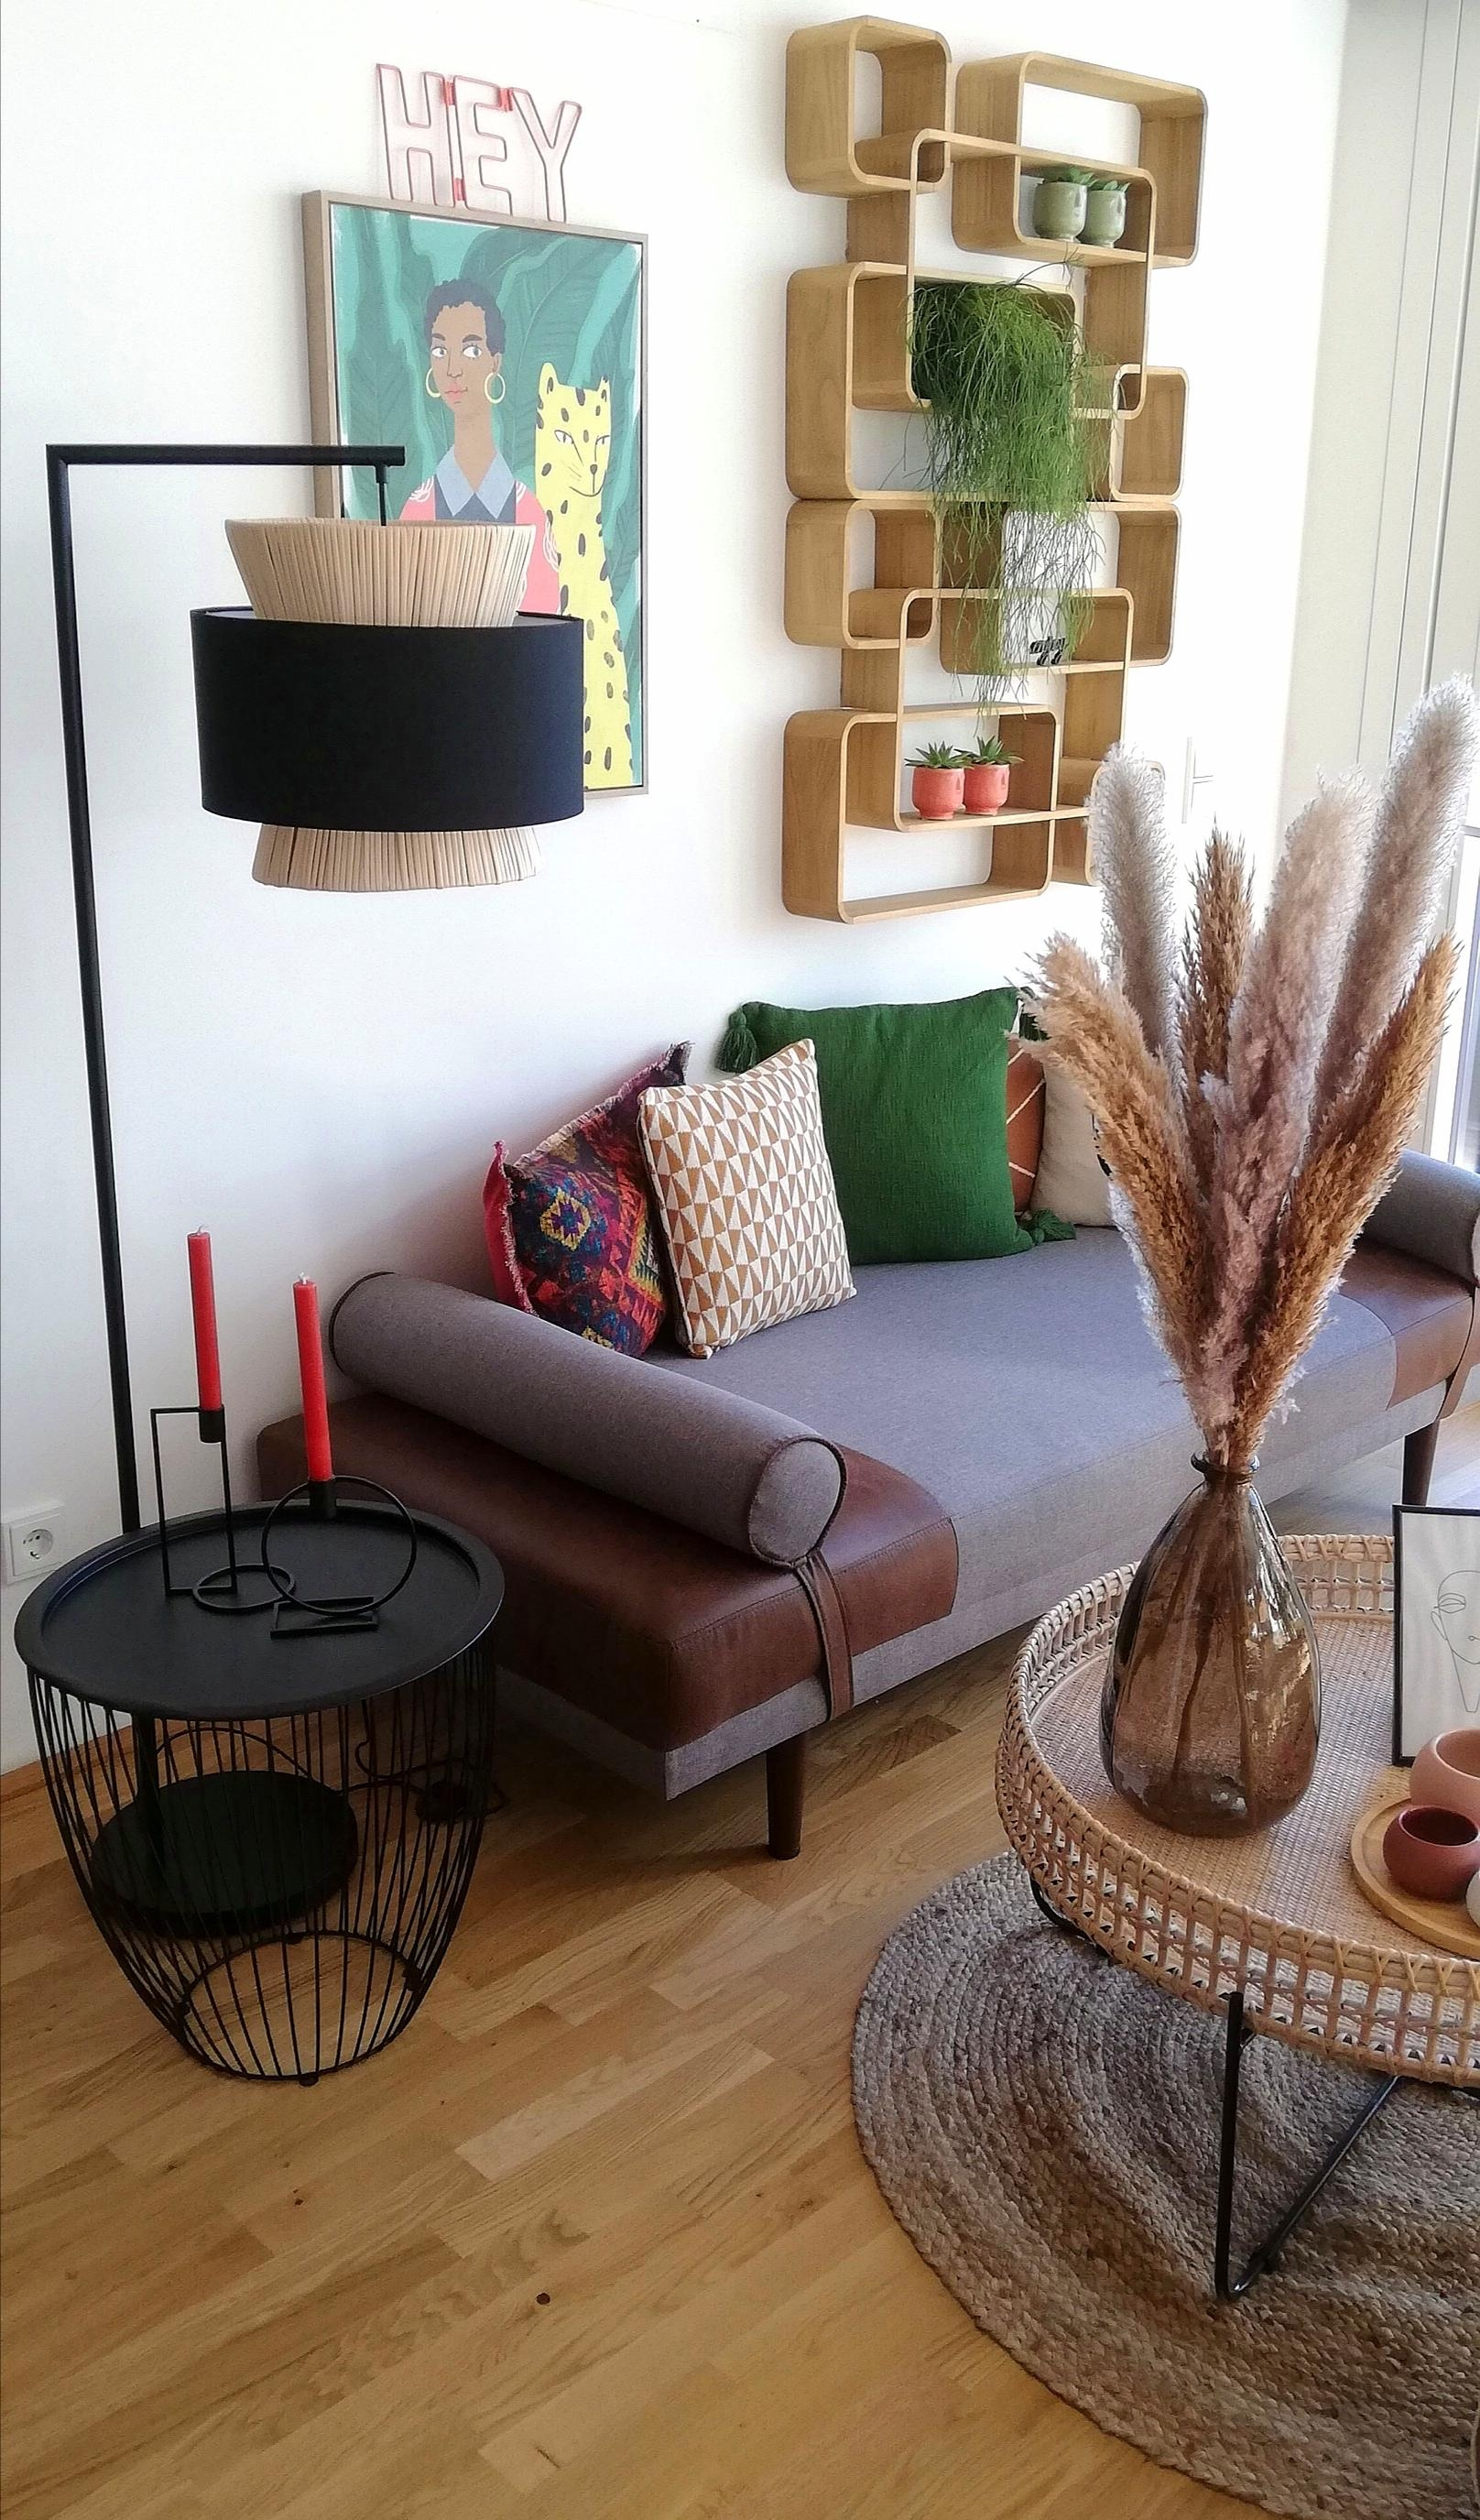 #cozyhome #herbstdeko #living #interior #lightloves #grässer #fall #interior #interiordesign #decor #decoration #rattan